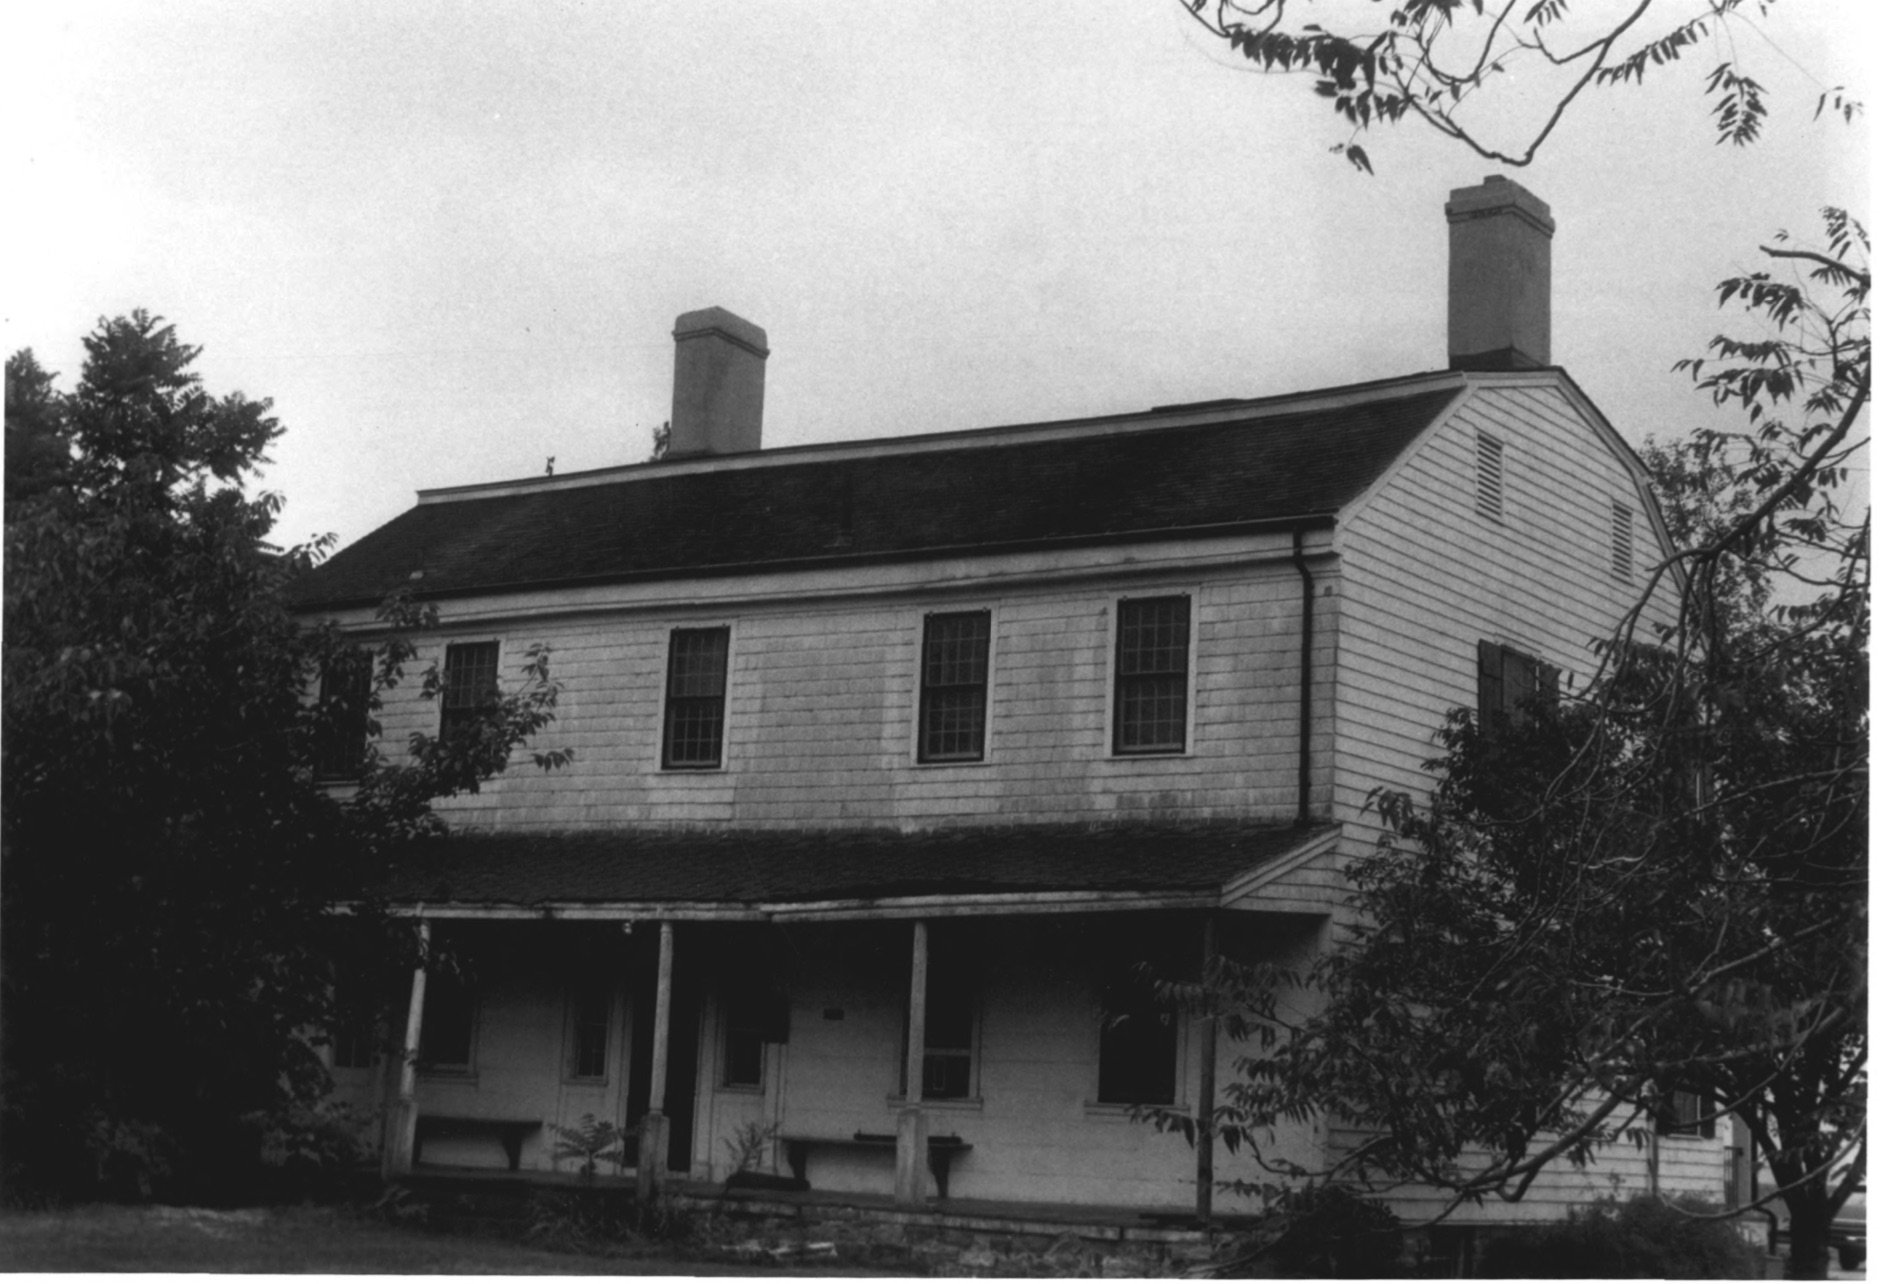 Rear Facade on the Cove Island House in 1979 by D. Ransom, Part of the NPS NRHP Photographic Collection on the Cove House